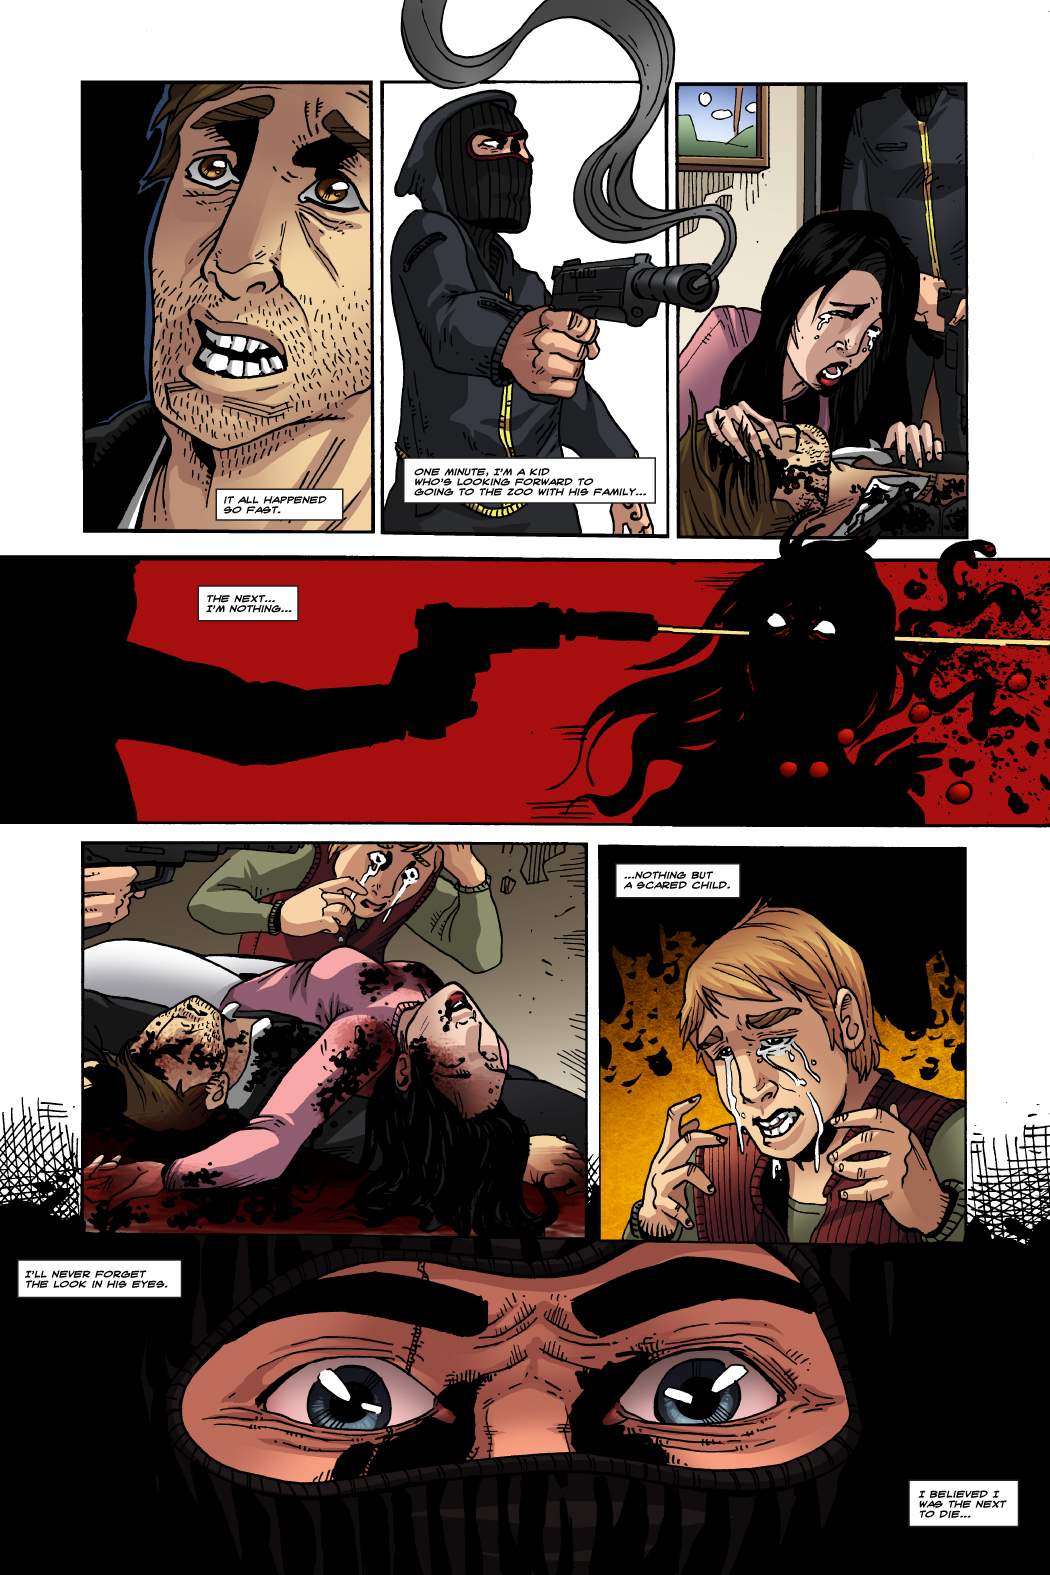 GONE IS INNOCENCE (Page 2)